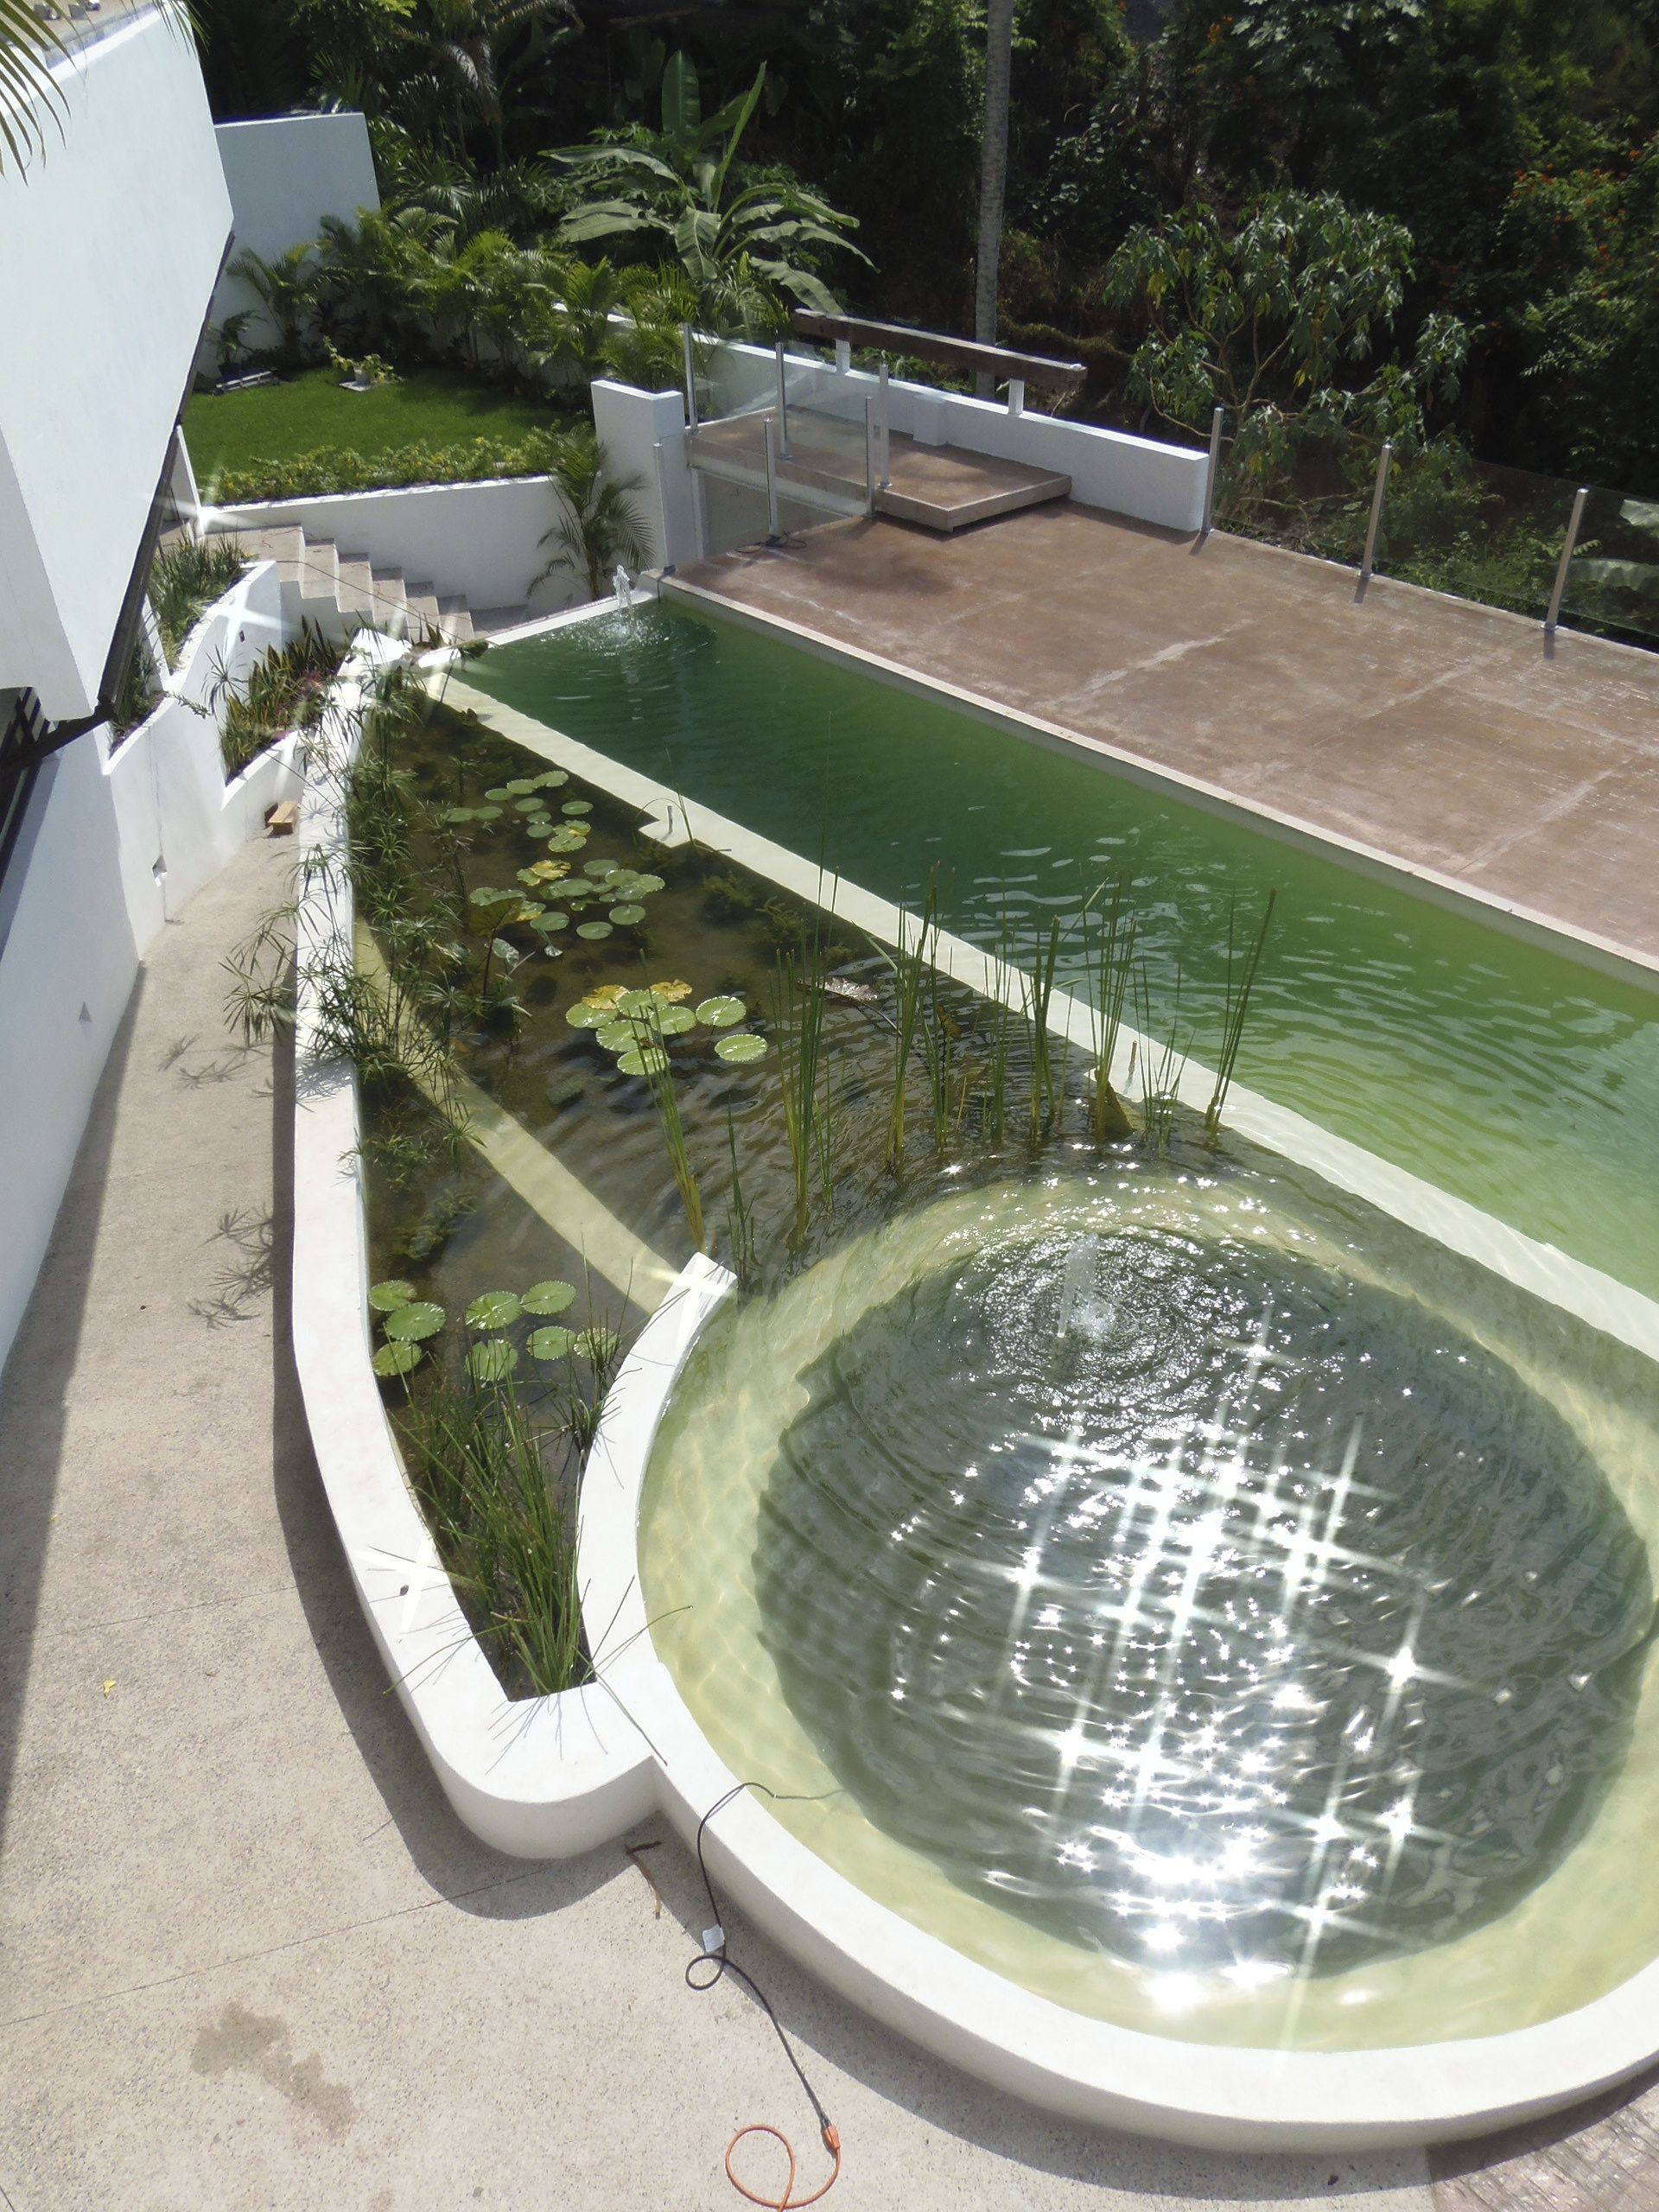 Eco friendly pool designs solar heating and bio filter interior - Nemi Eco Villa In Puerto Vallarta Mexico 40 Foot Natural Swimming Pool Made From A